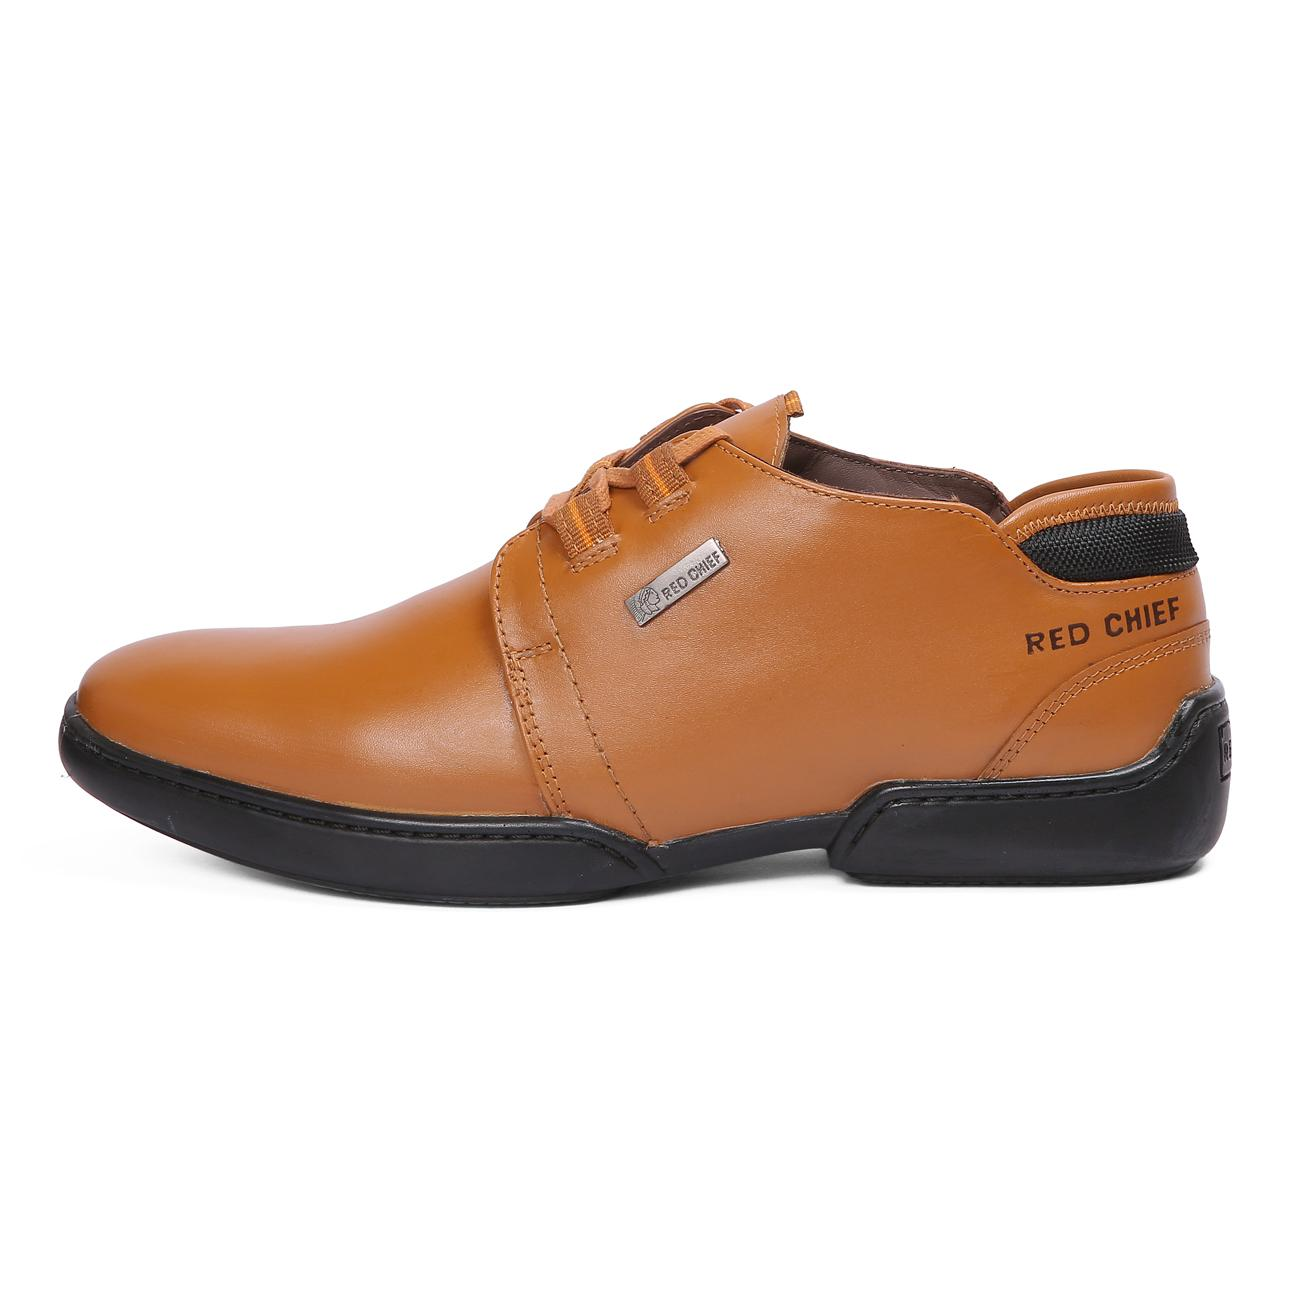 n tan casual leather shoes rubber sole